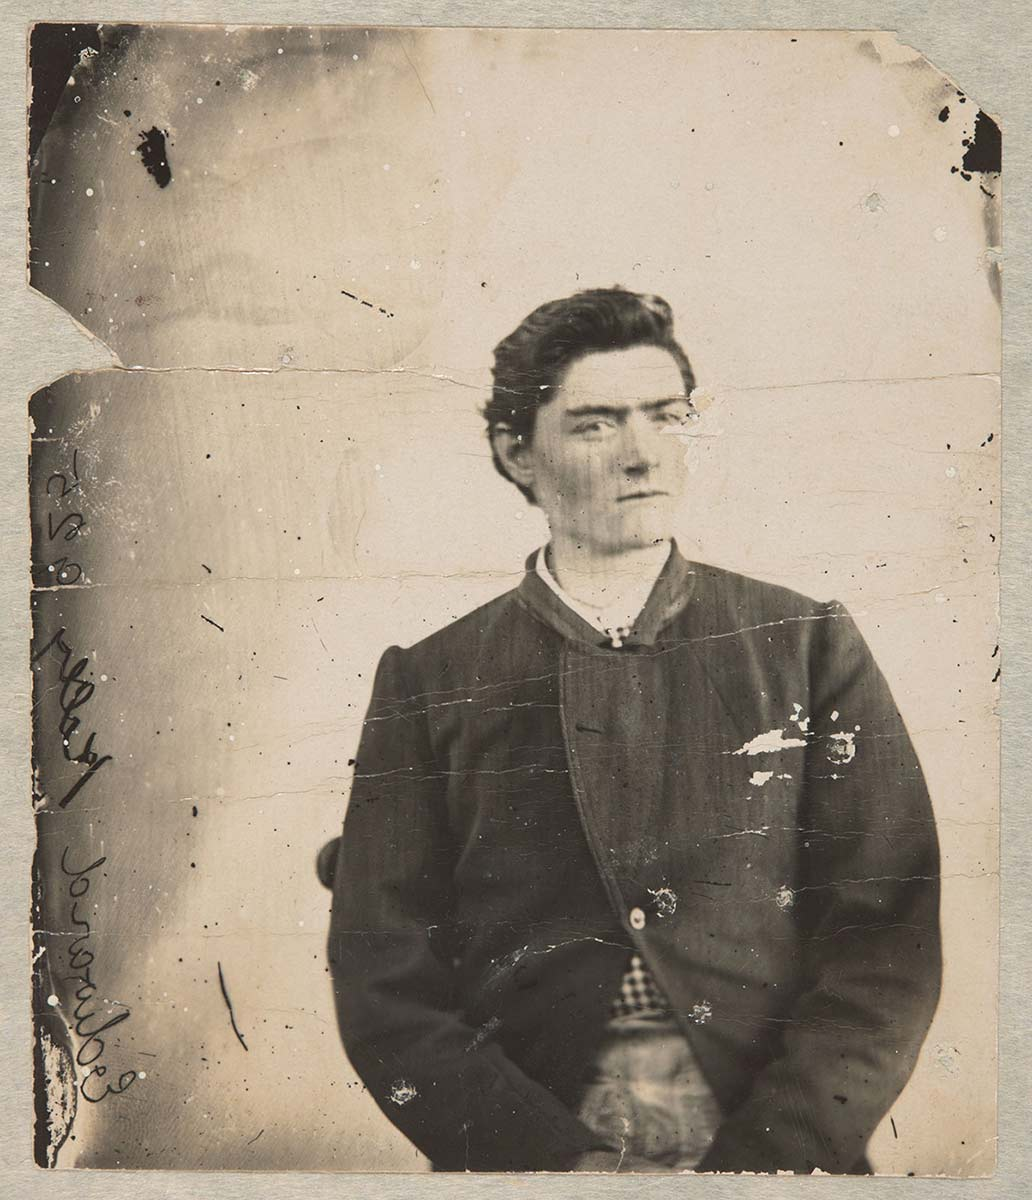 Photo of a young man taken from waist up. - click to view larger image